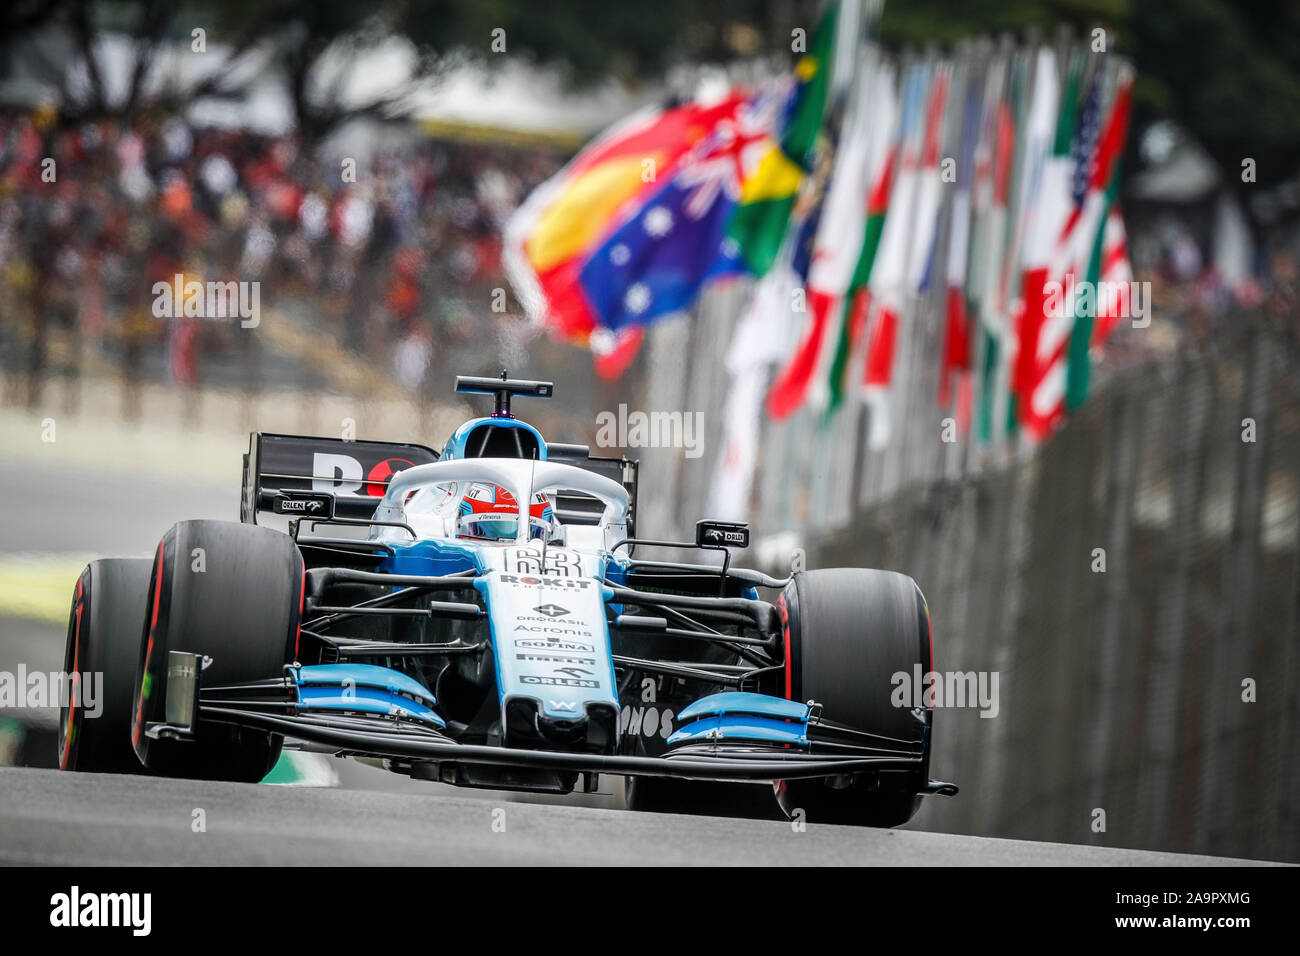 Sao Paulo, Brazil. 16th Nov, 2019. 63 RUSSELL George (gbr), Williams Racing F1 FW42, action during the 2019 Formula One World Championship, Brazil Grand Prix from November 15 to 17 in Sao Paulo, Brazil - | usage worldwide Credit: dpa/Alamy Live News - Stock Photo